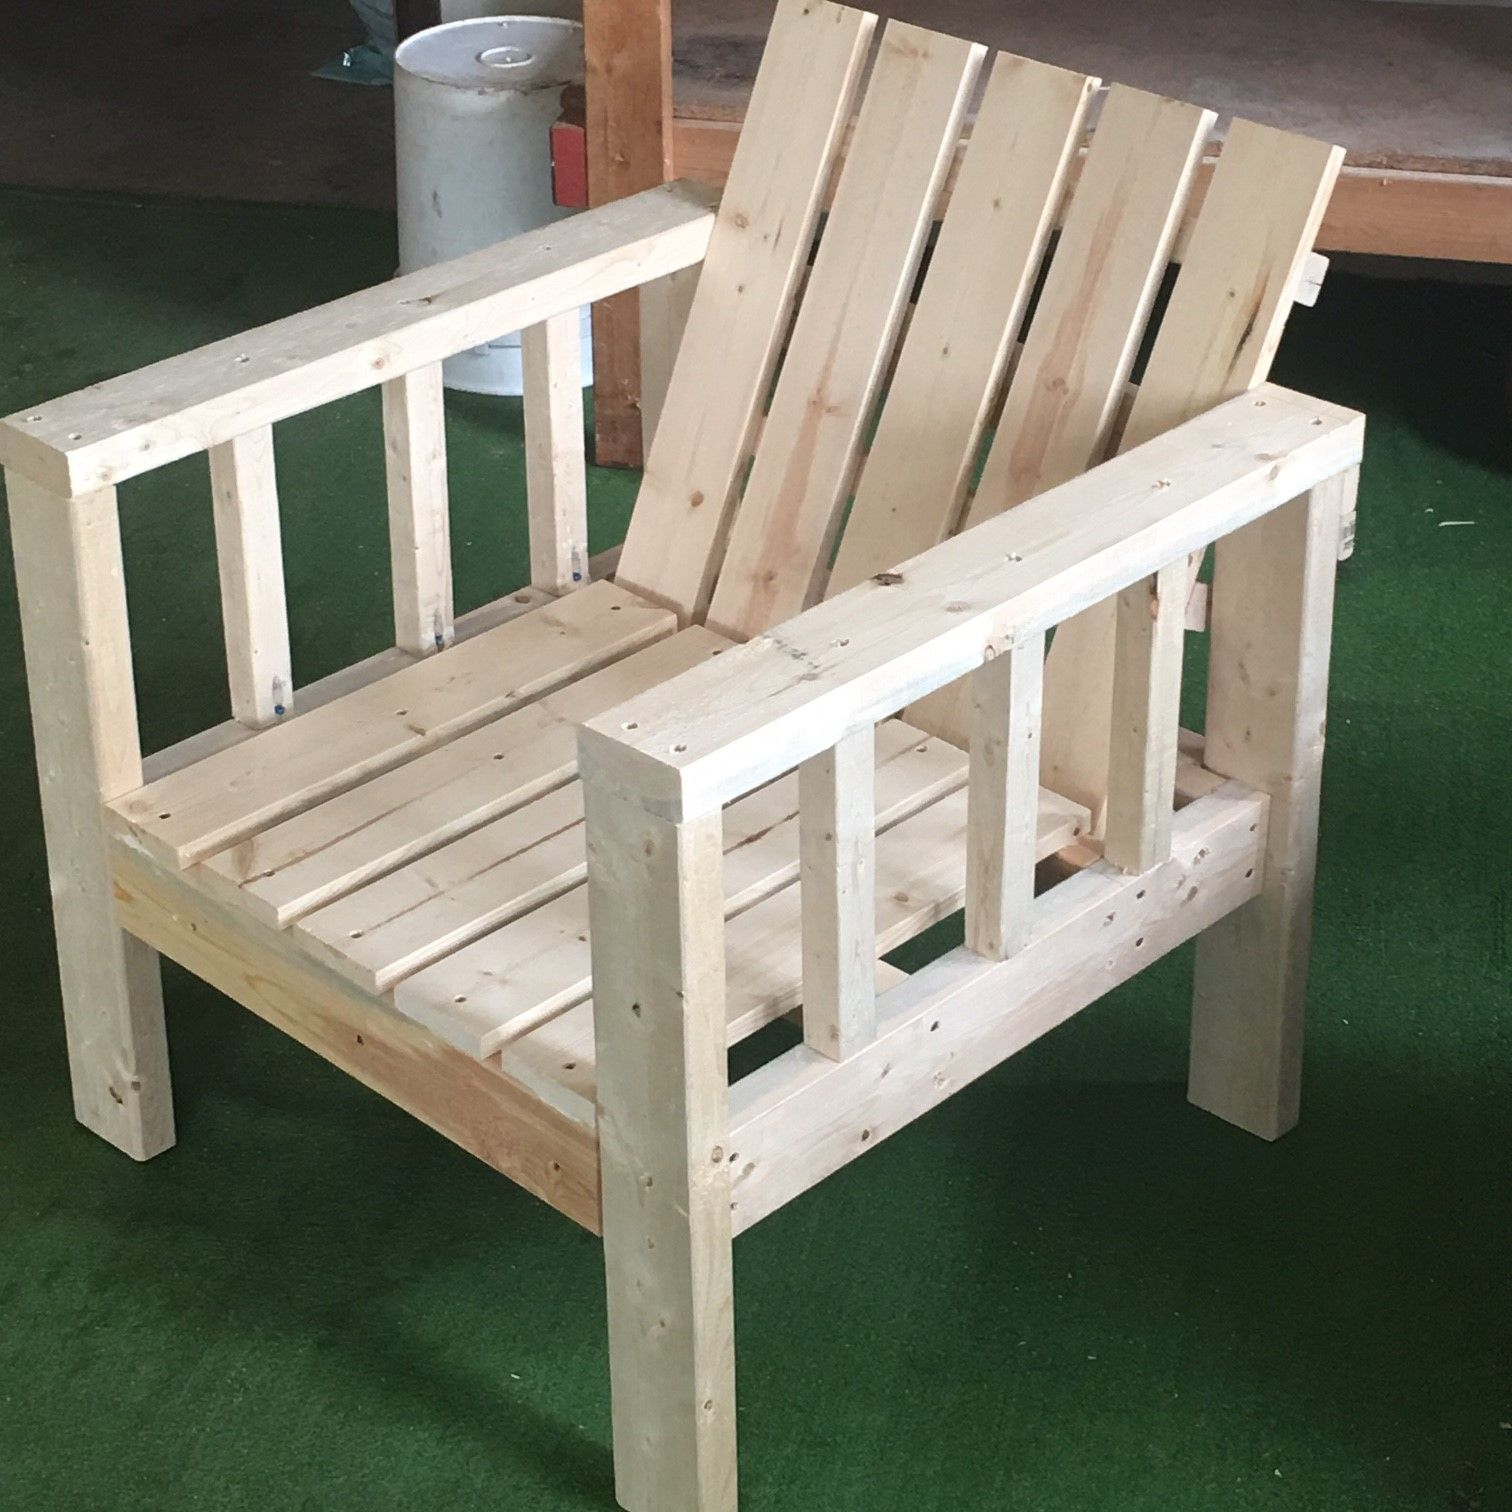 Wooden beach lounge chair - My Simple Outdoor Lounge Chair With 2x4 Modification Do It Yourself Home Projects From Ana